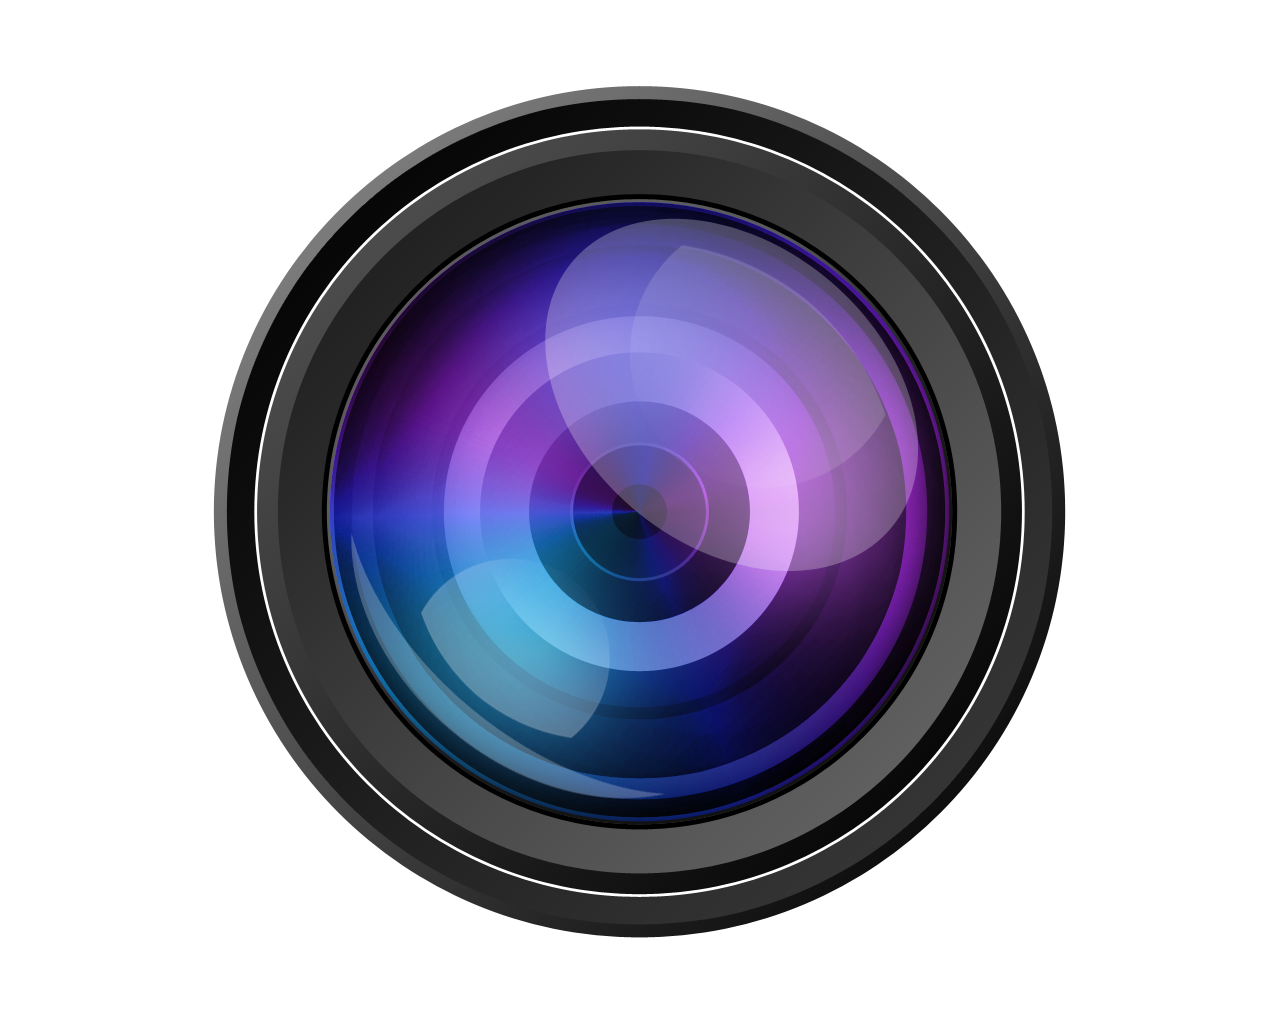 Lens Png Download Clipart image #1340